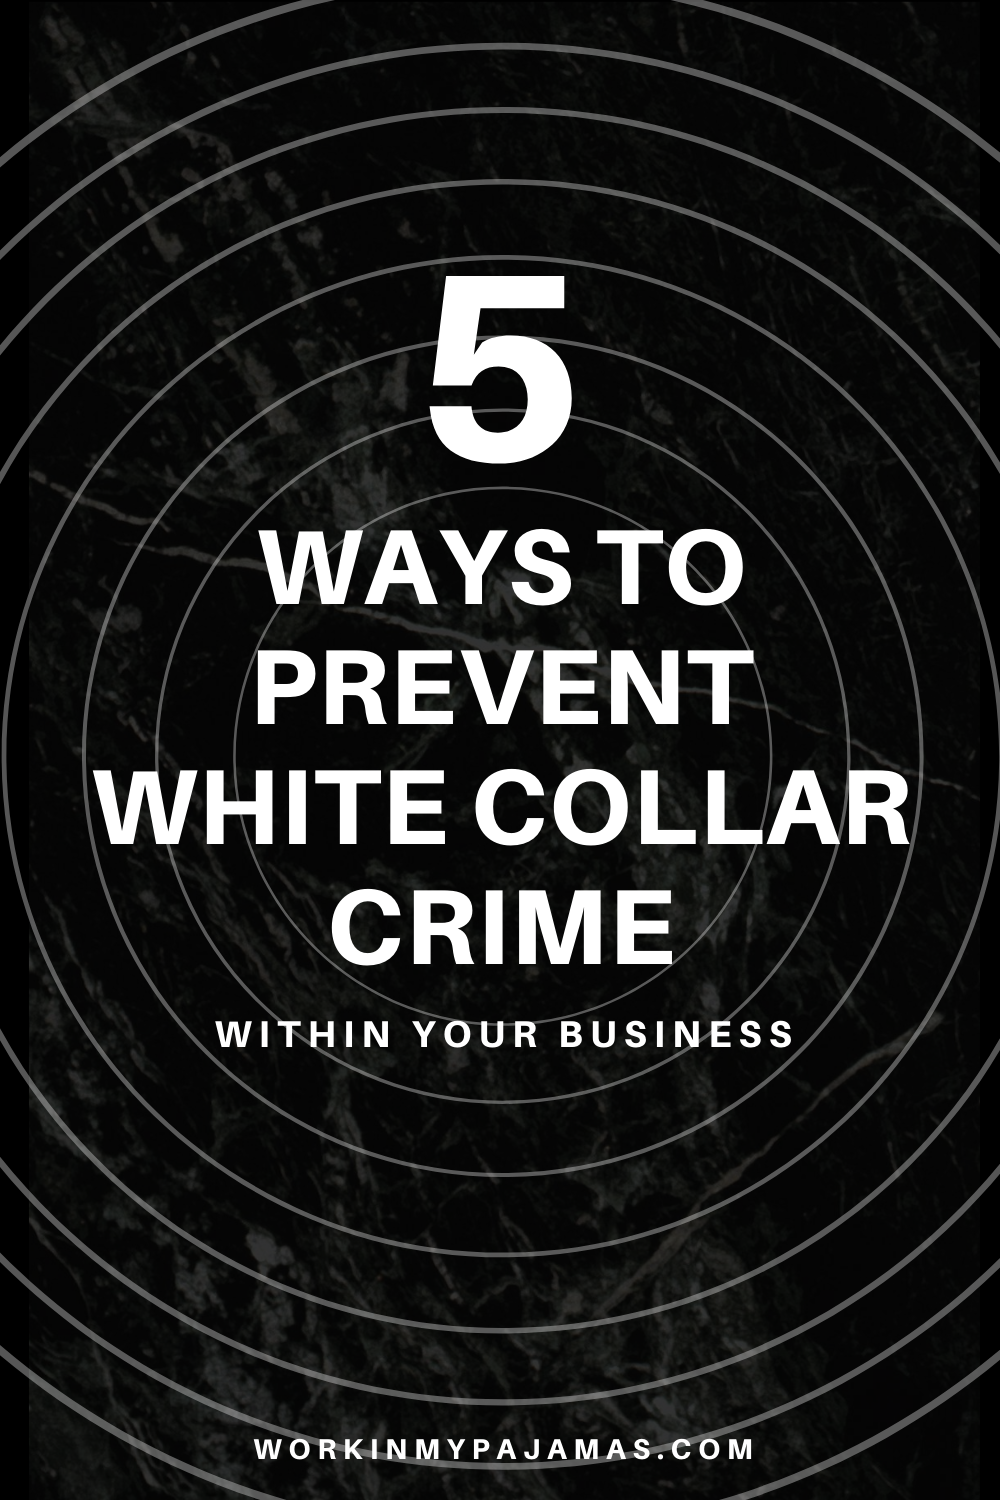 5 Ways to Prevent White Collar Crime Within Your Business